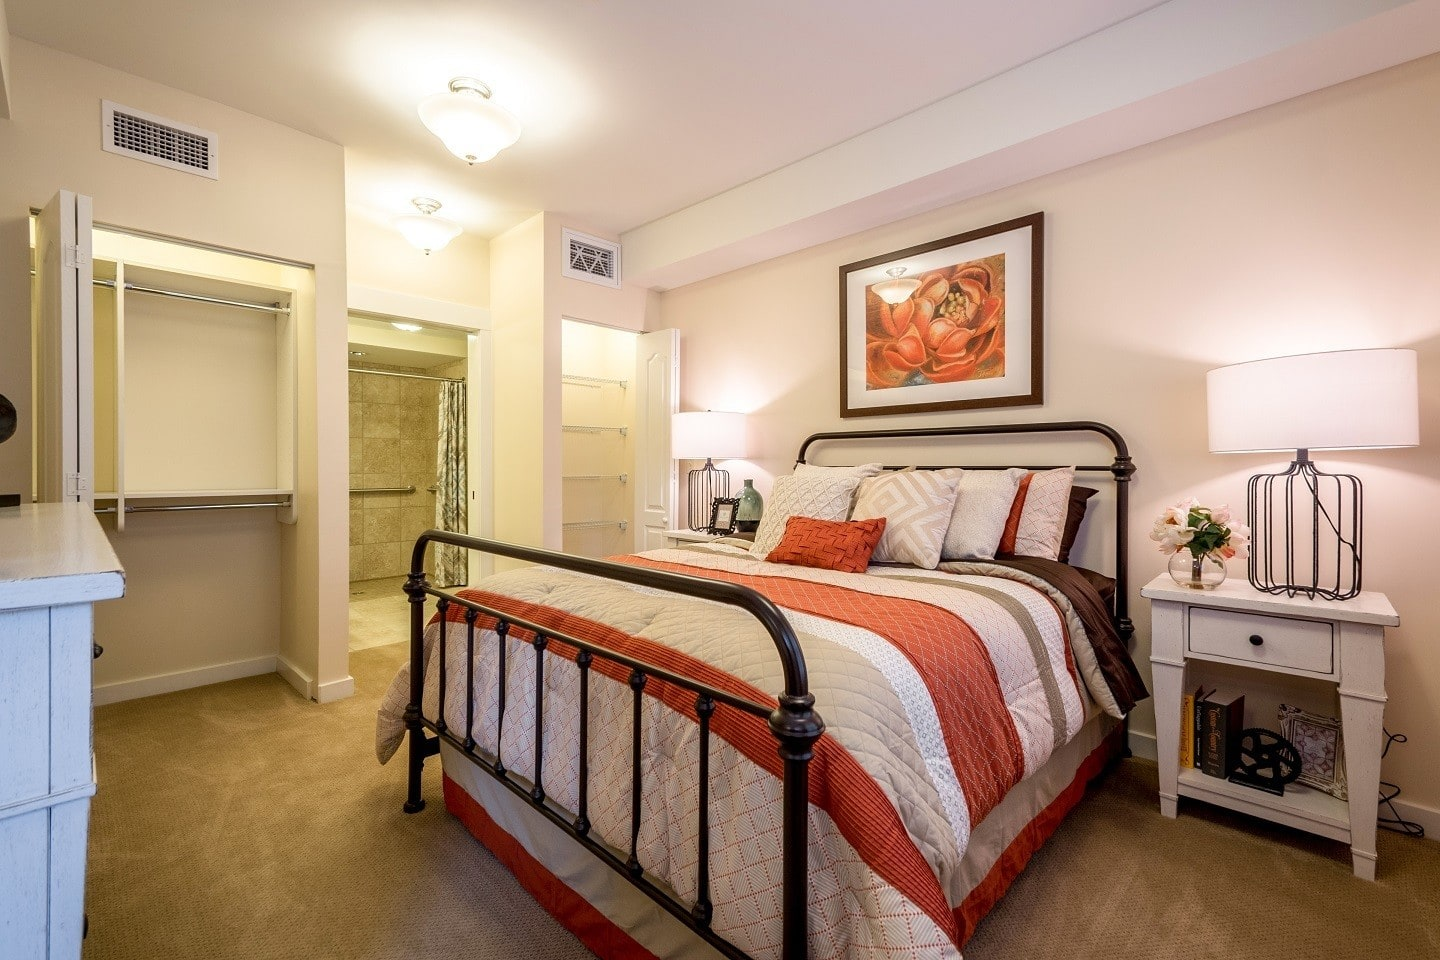 Senior living residents in Suwanee enjoy spacious bedrooms